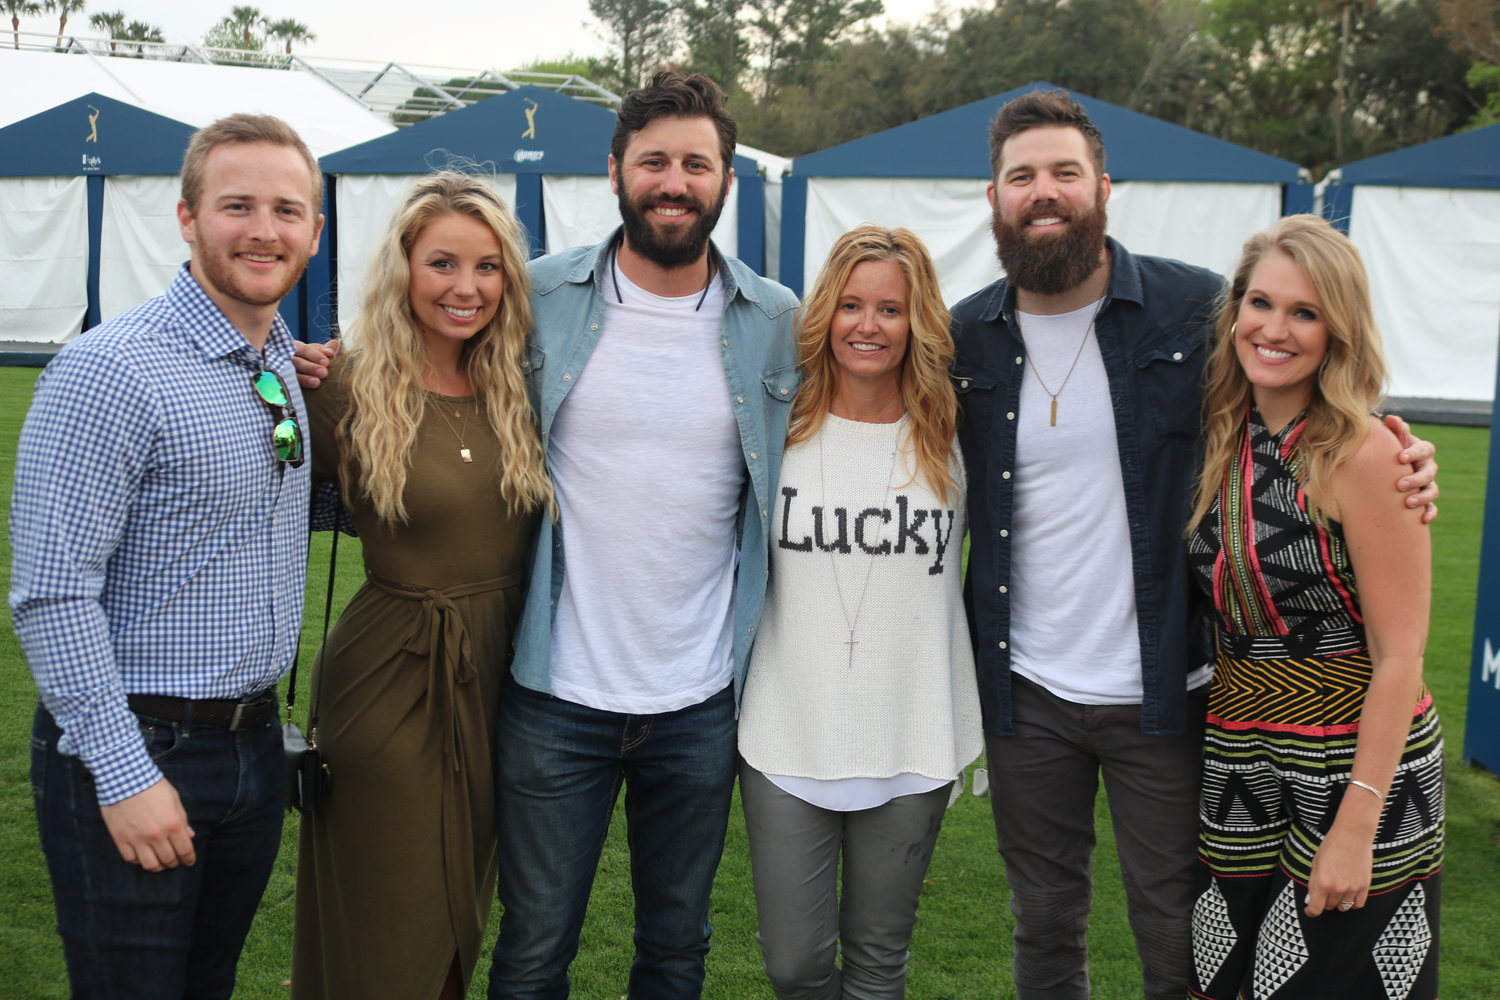 Chad Sutton, Mariah Sutton, Zach Sutton, Tabitha Furyk, Jordan Davis and Kristen Davis at the concert at TPC Sawgrass